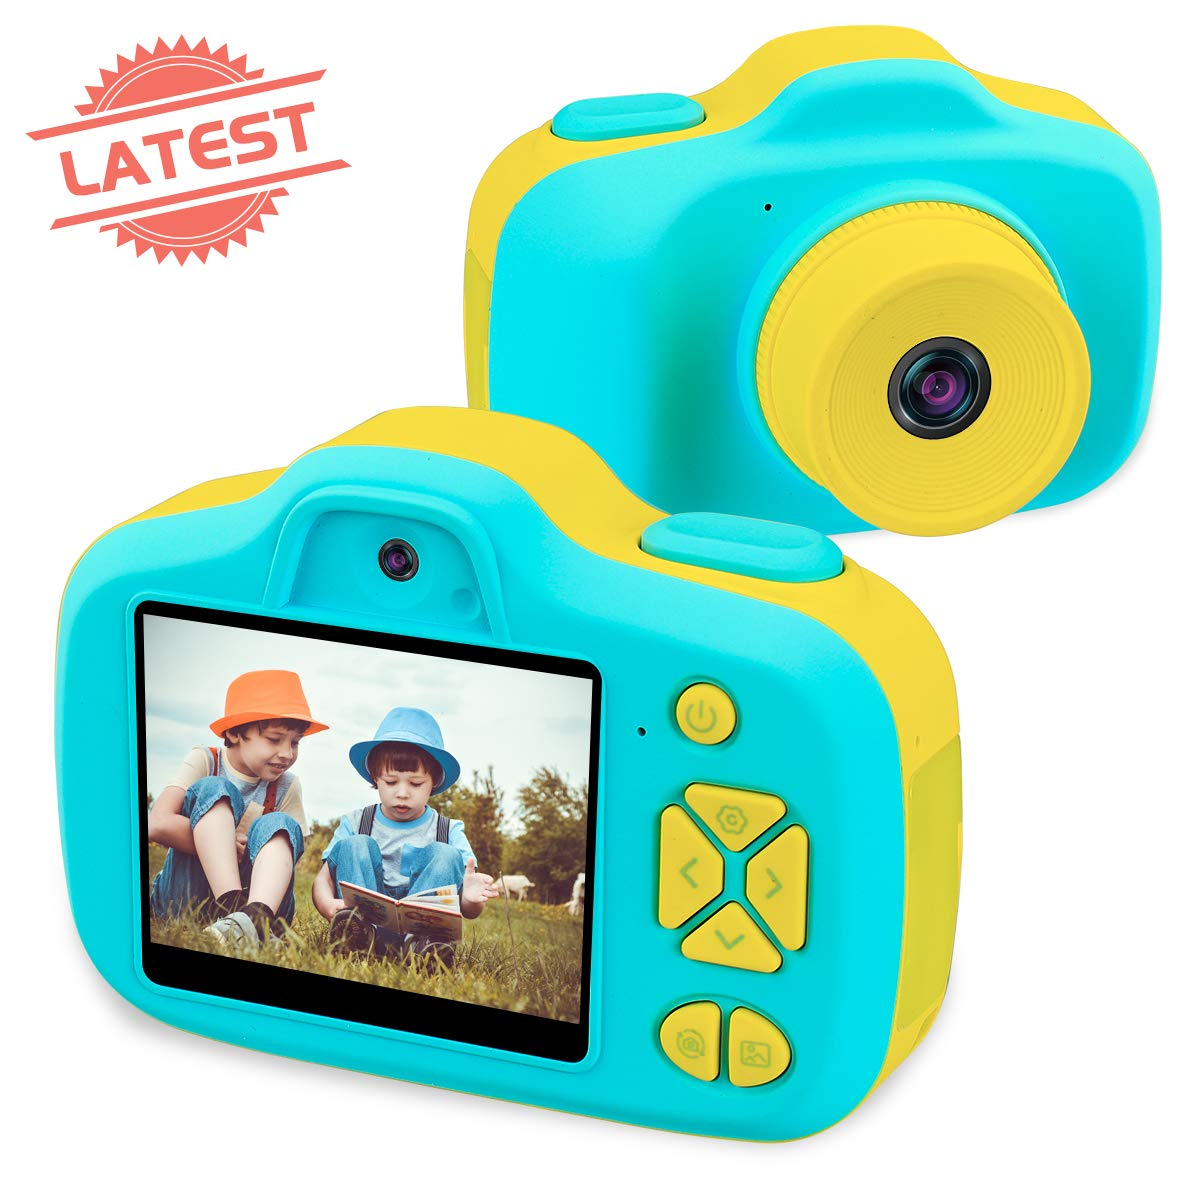 Joytrip Kids Digital Cameras for Boys Gifts HD 2.3 Inches Screen 8.0MP Video Camera for Kids Shockproof Children Selfie Toy Camera Anti-fall Mini Child Camcorder for Age 3-14 with Soft Material (Blue) by Joytrip (Image #1)